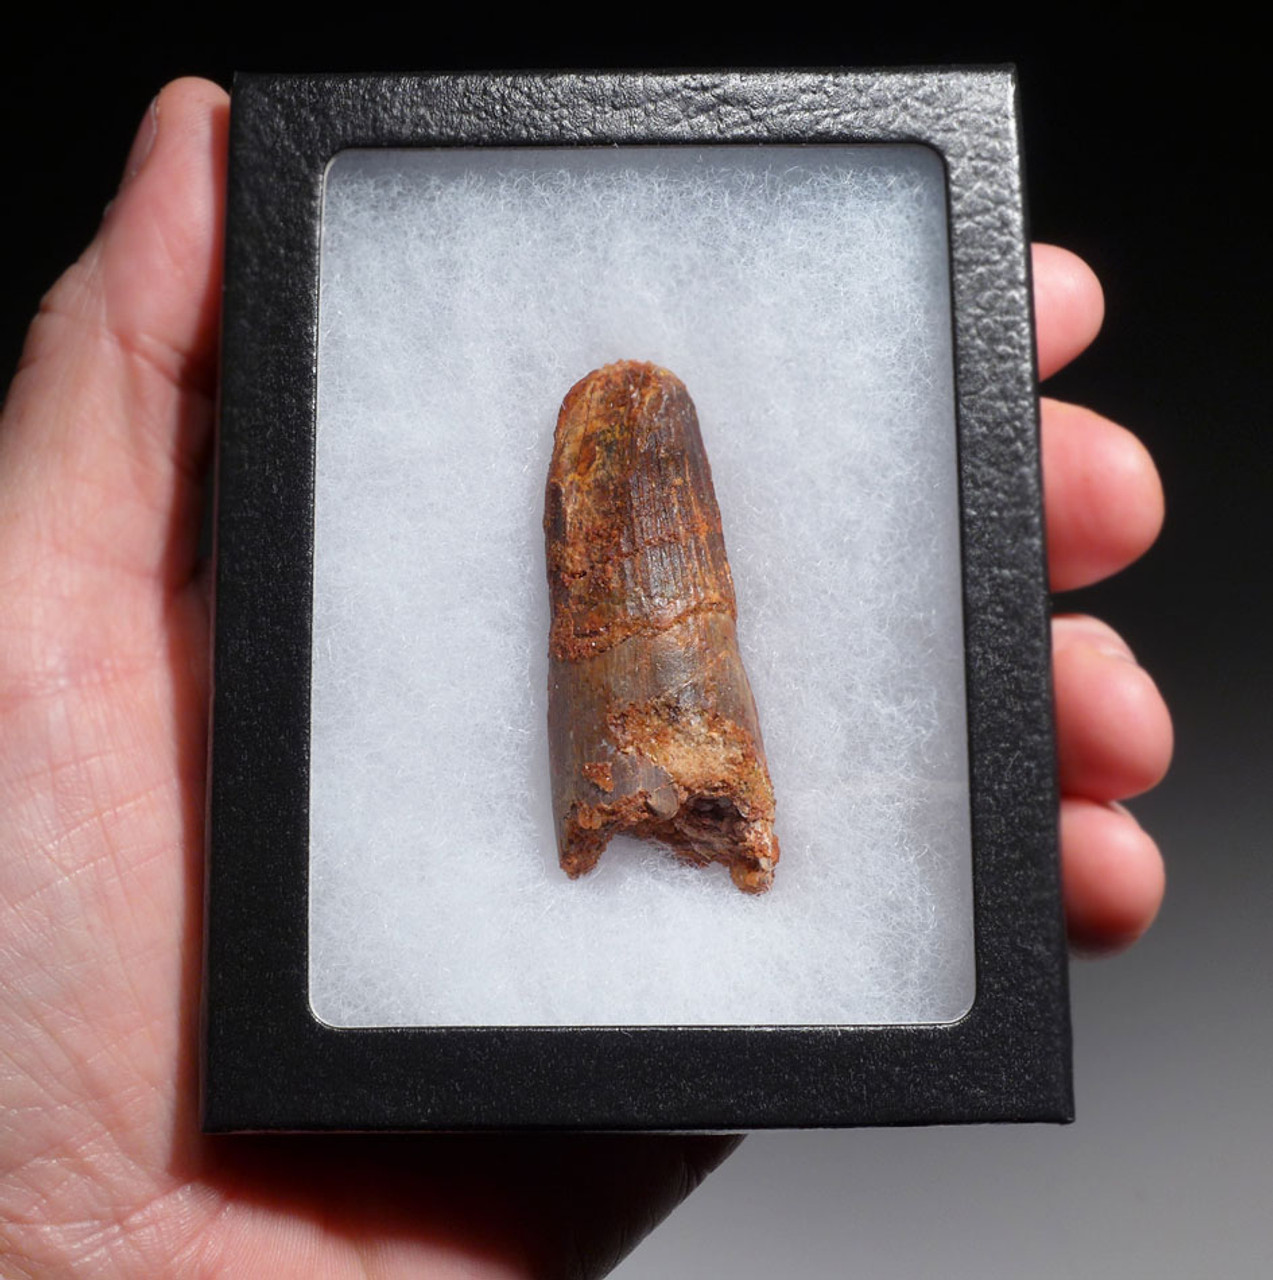 2.2 INCH FOSSIL DINOSAUR TOOTH WITH FEEDING WEAR FROM A LARGE SPINOSAURUS *DT5-450